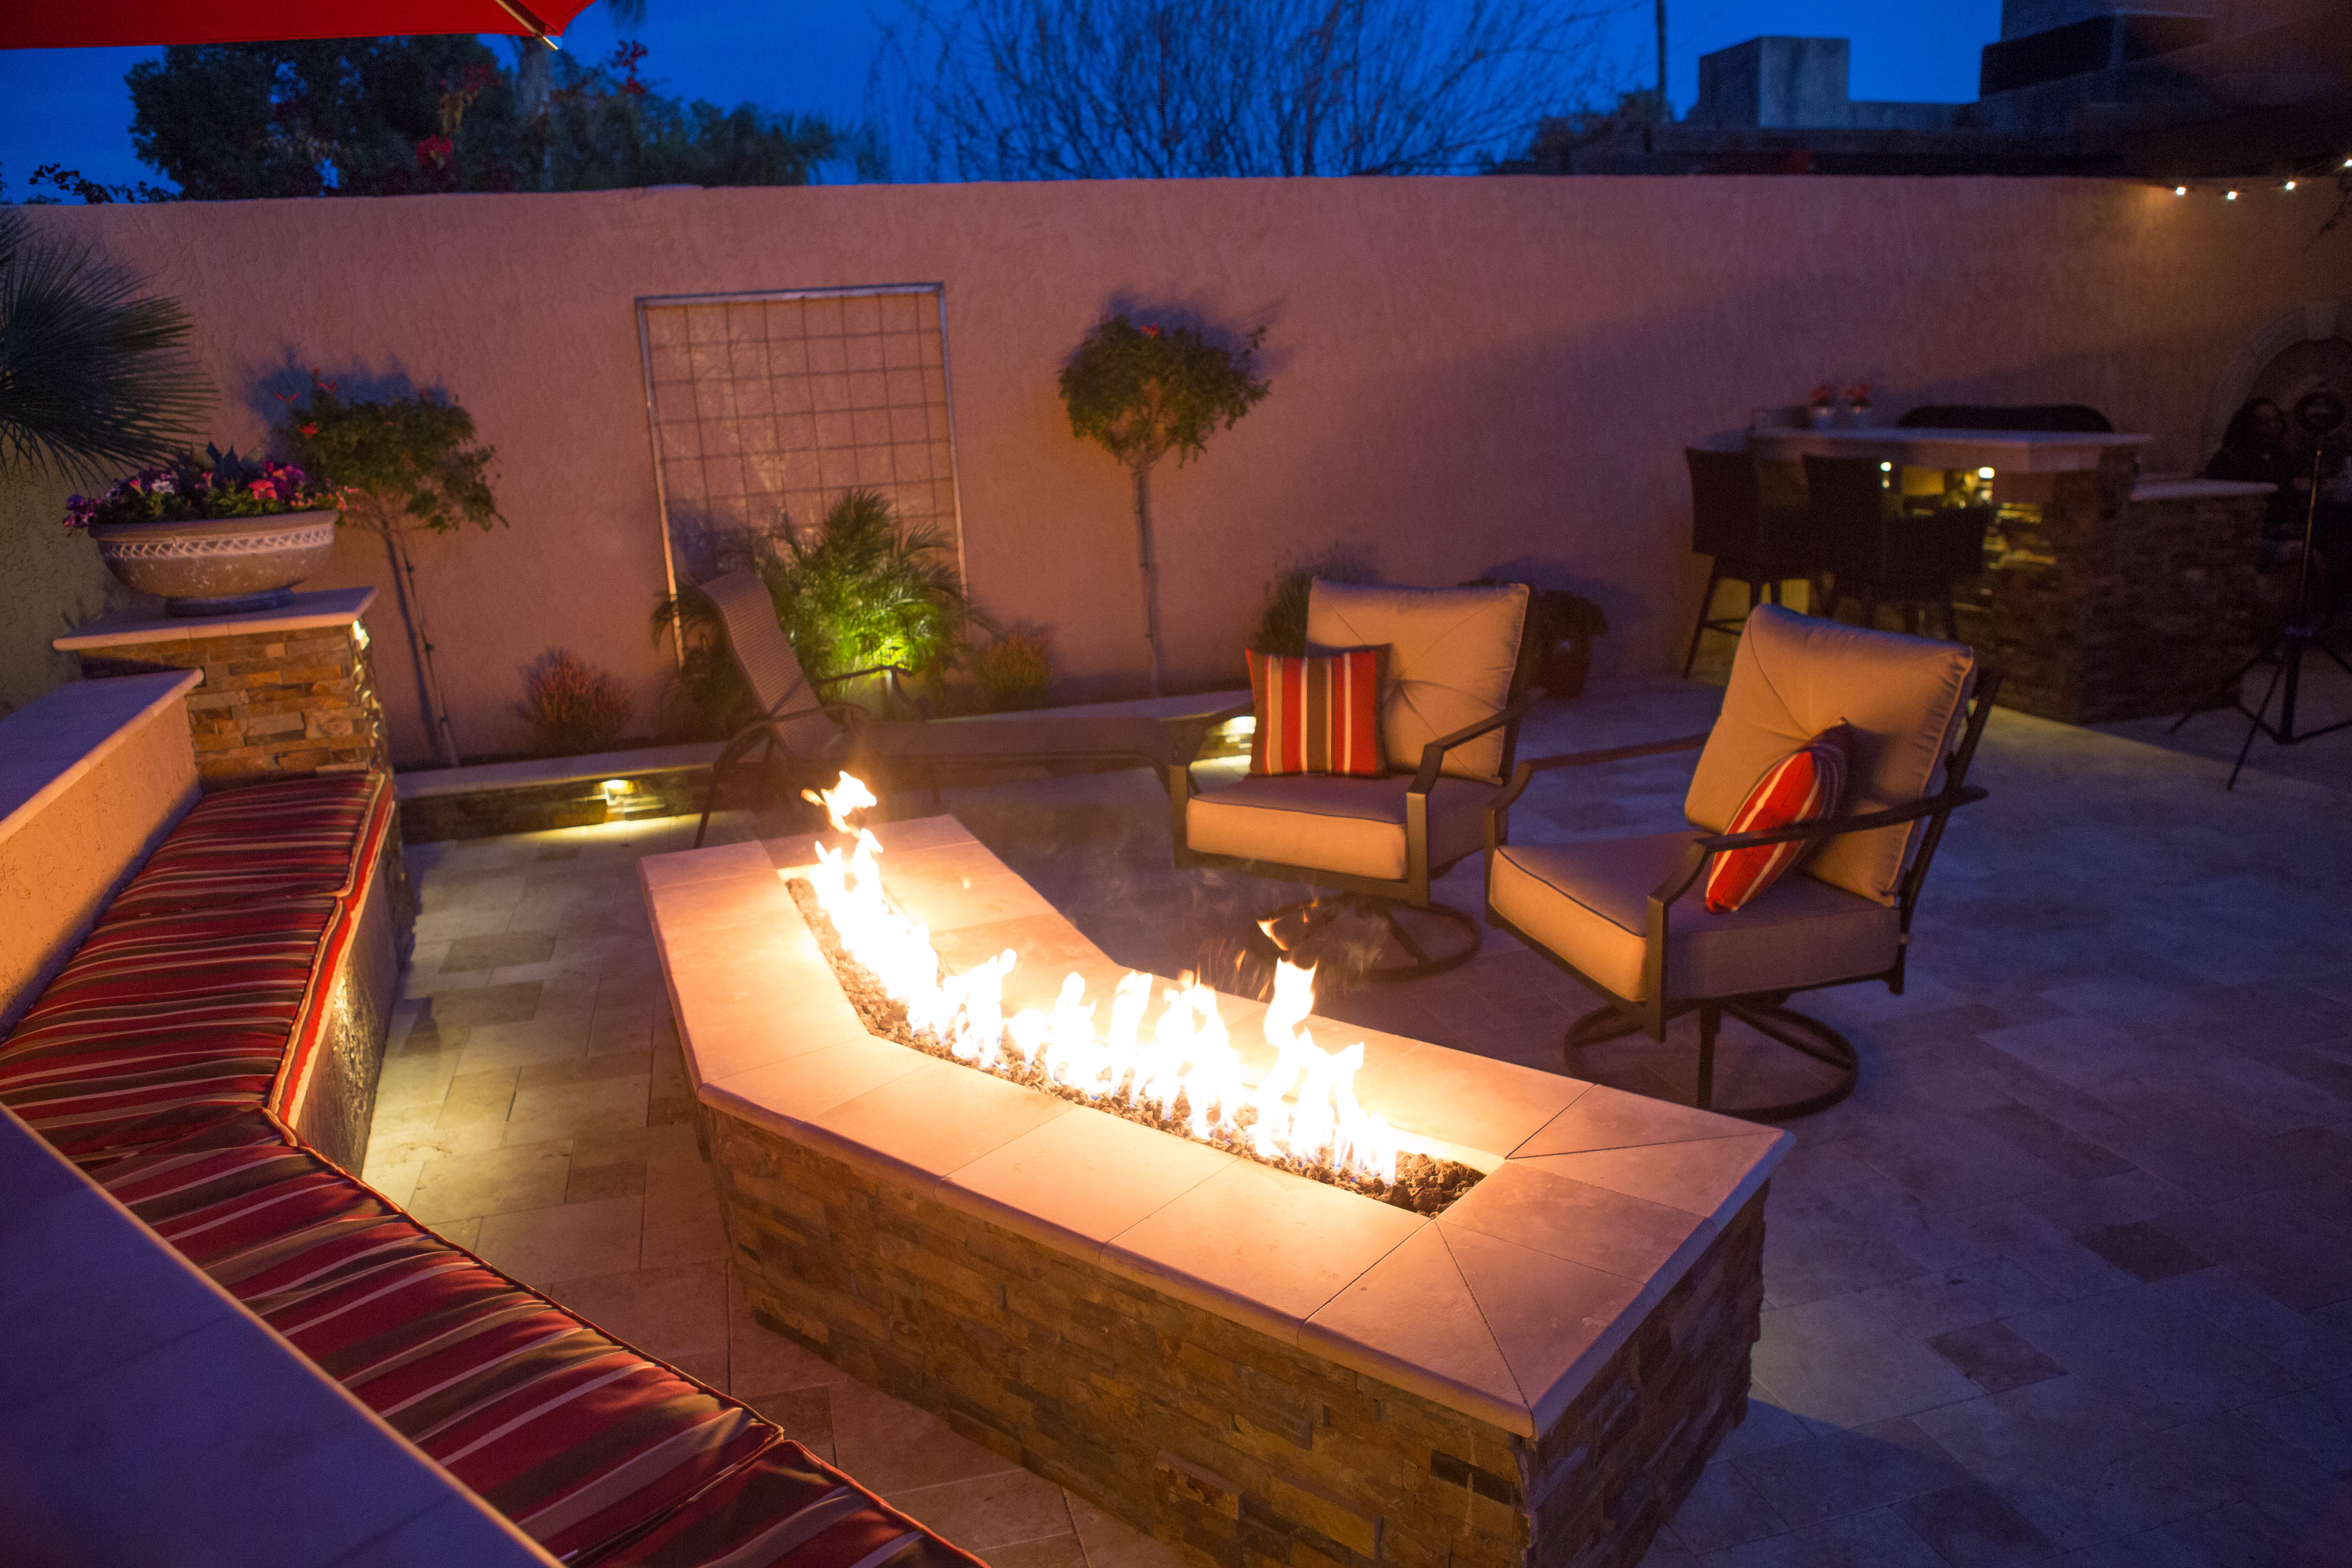 Fire Pit seating area with Seat bench an